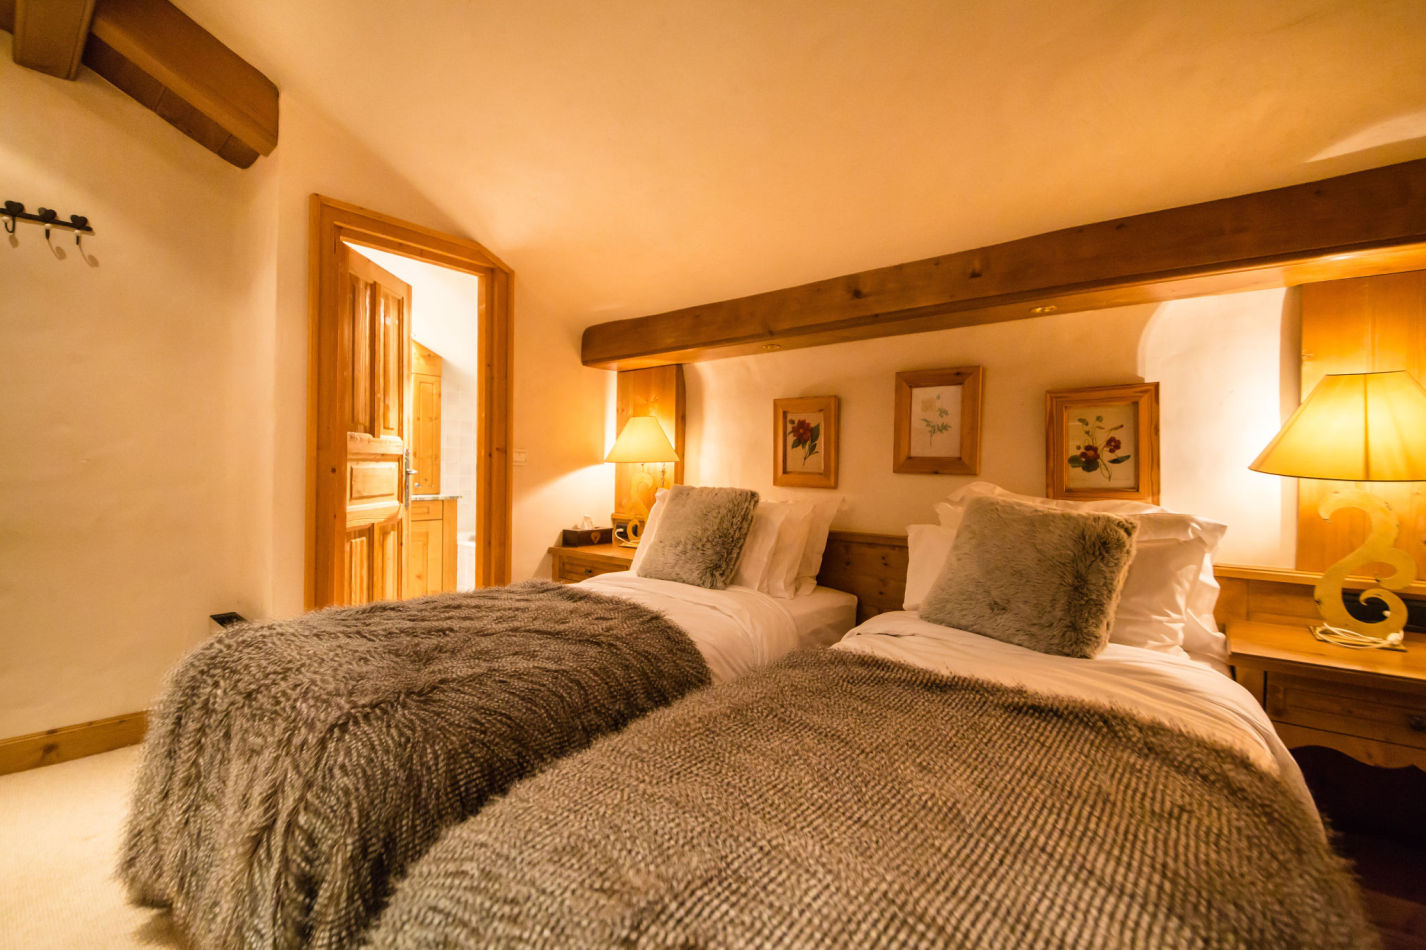 chalet-maisonnee-a-bedroom-image-4